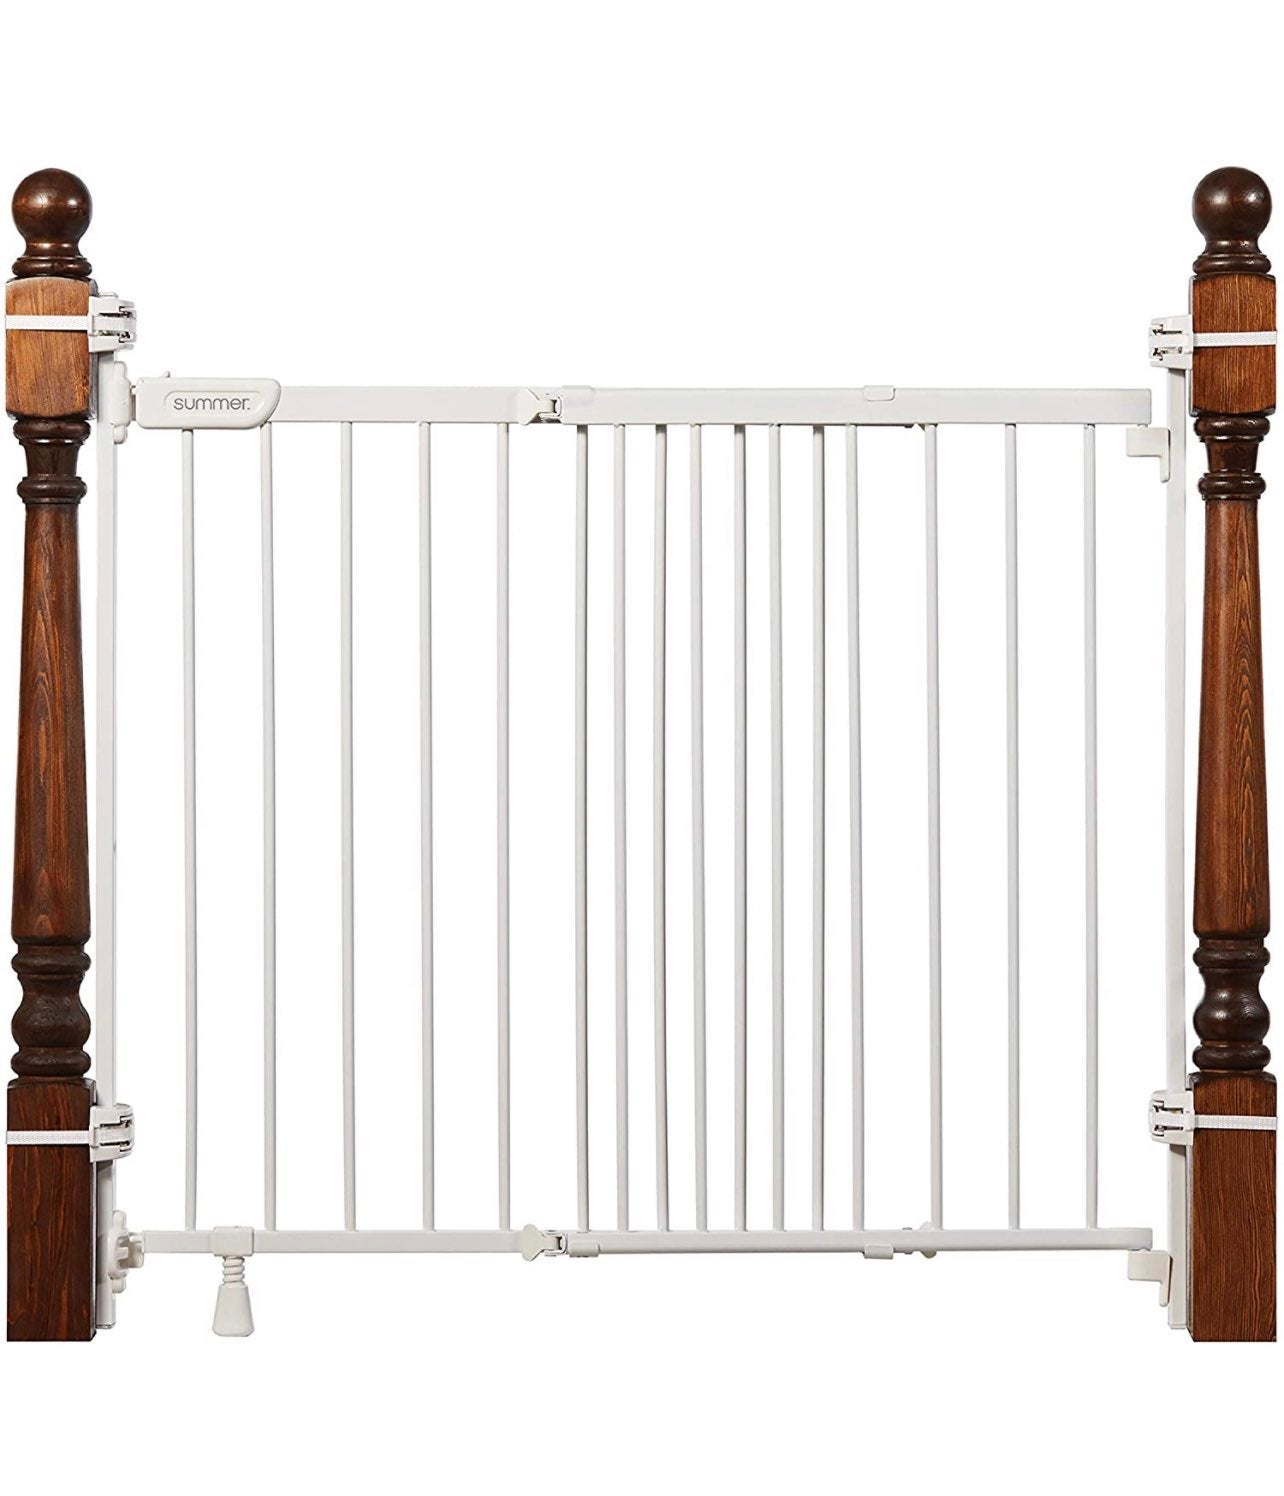 Summer Metal Banister and